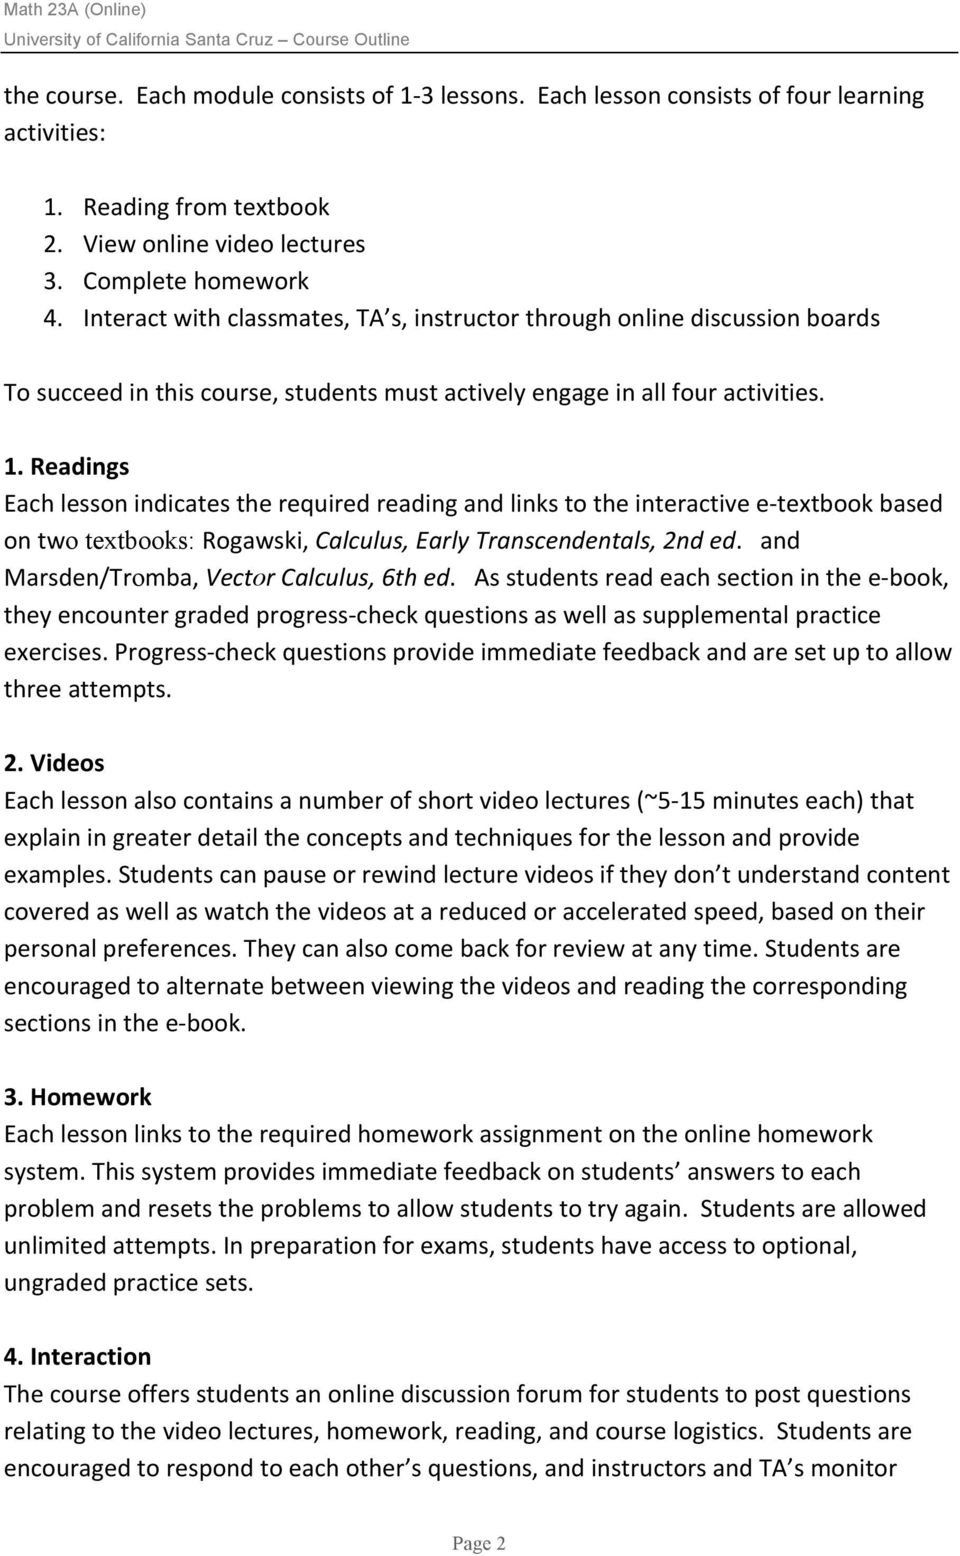 Readings Each lesson indicates the required reading and links to the  interactive e-textbook based